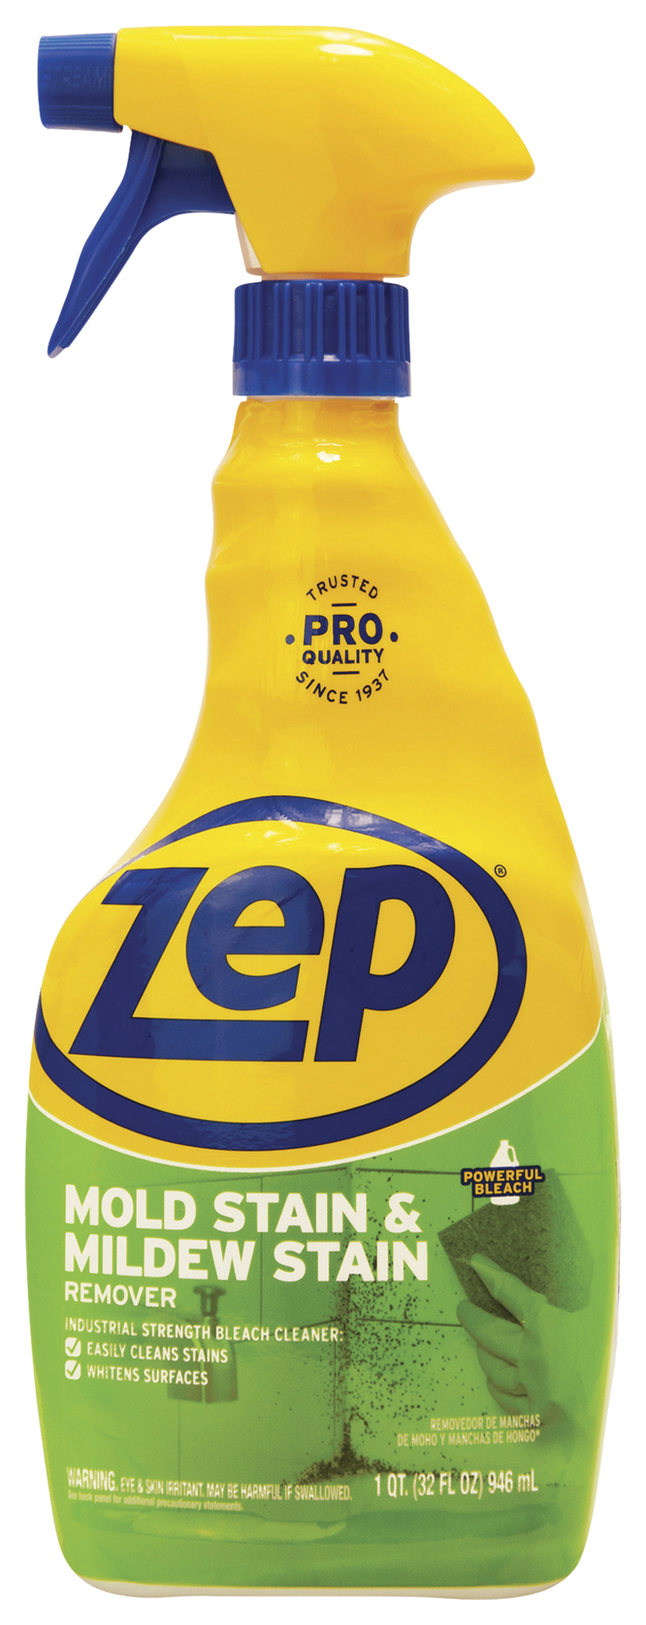 Cleaning Products, Item Number 2027054